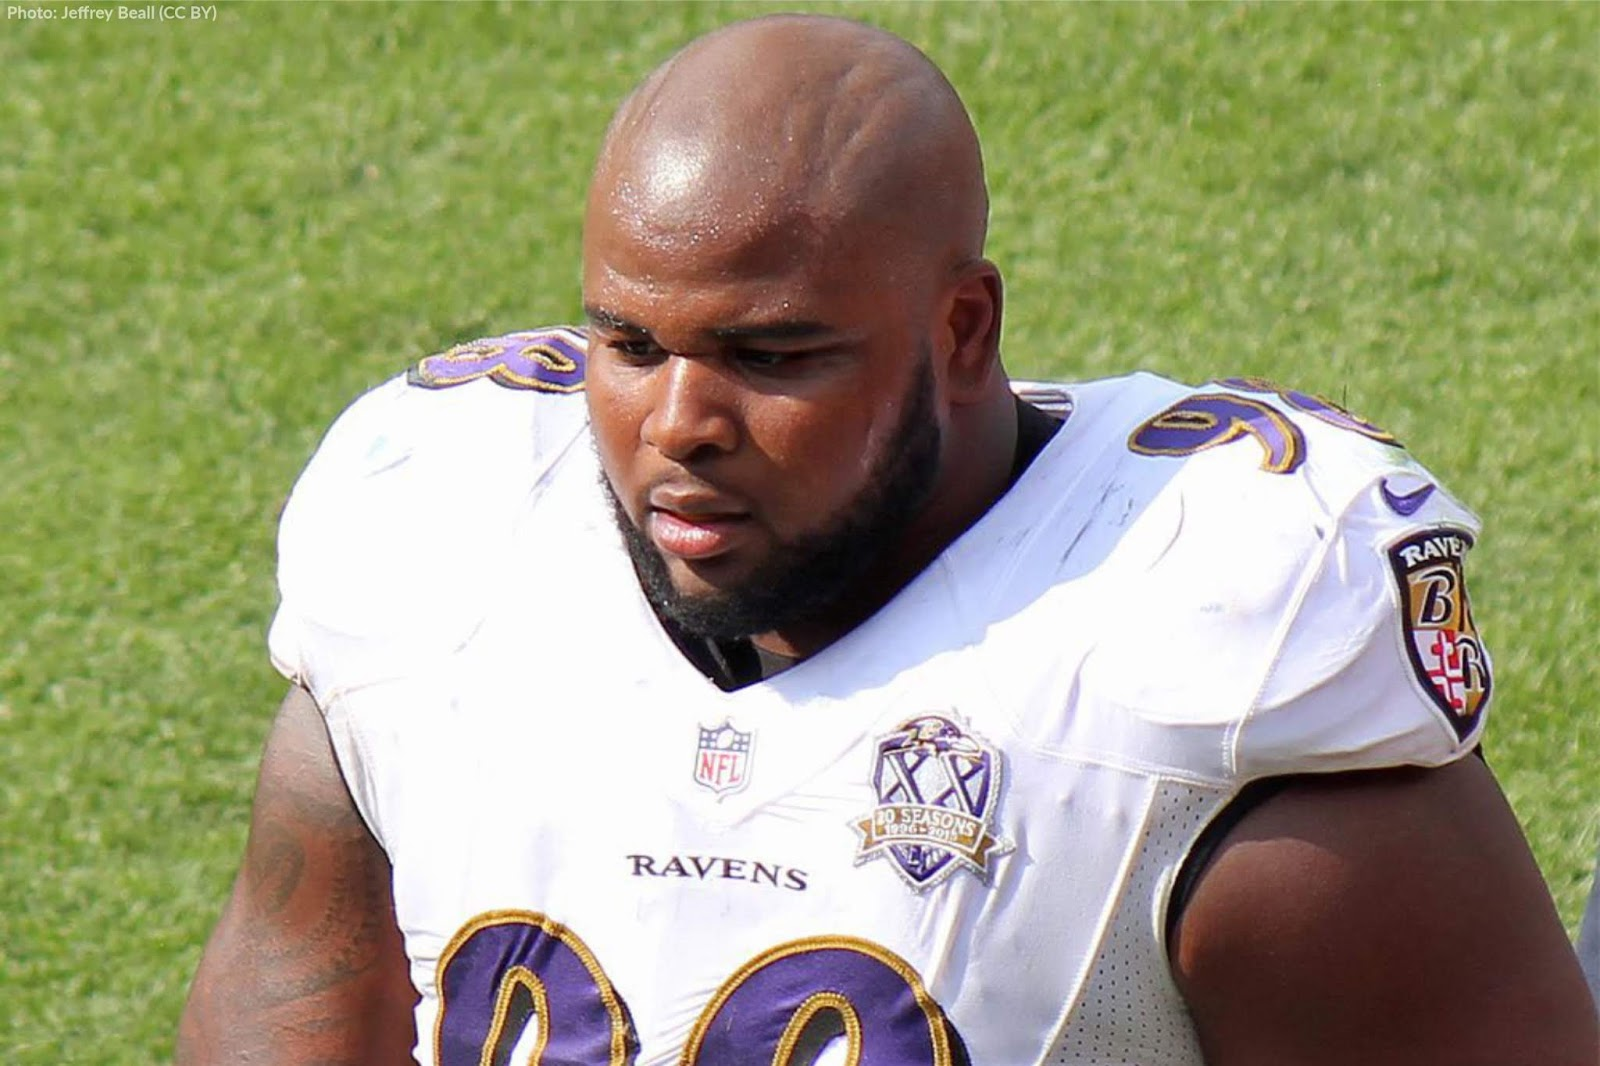 Baltimore Ravens defensive tackle, Brandon Williams, has keratoconus